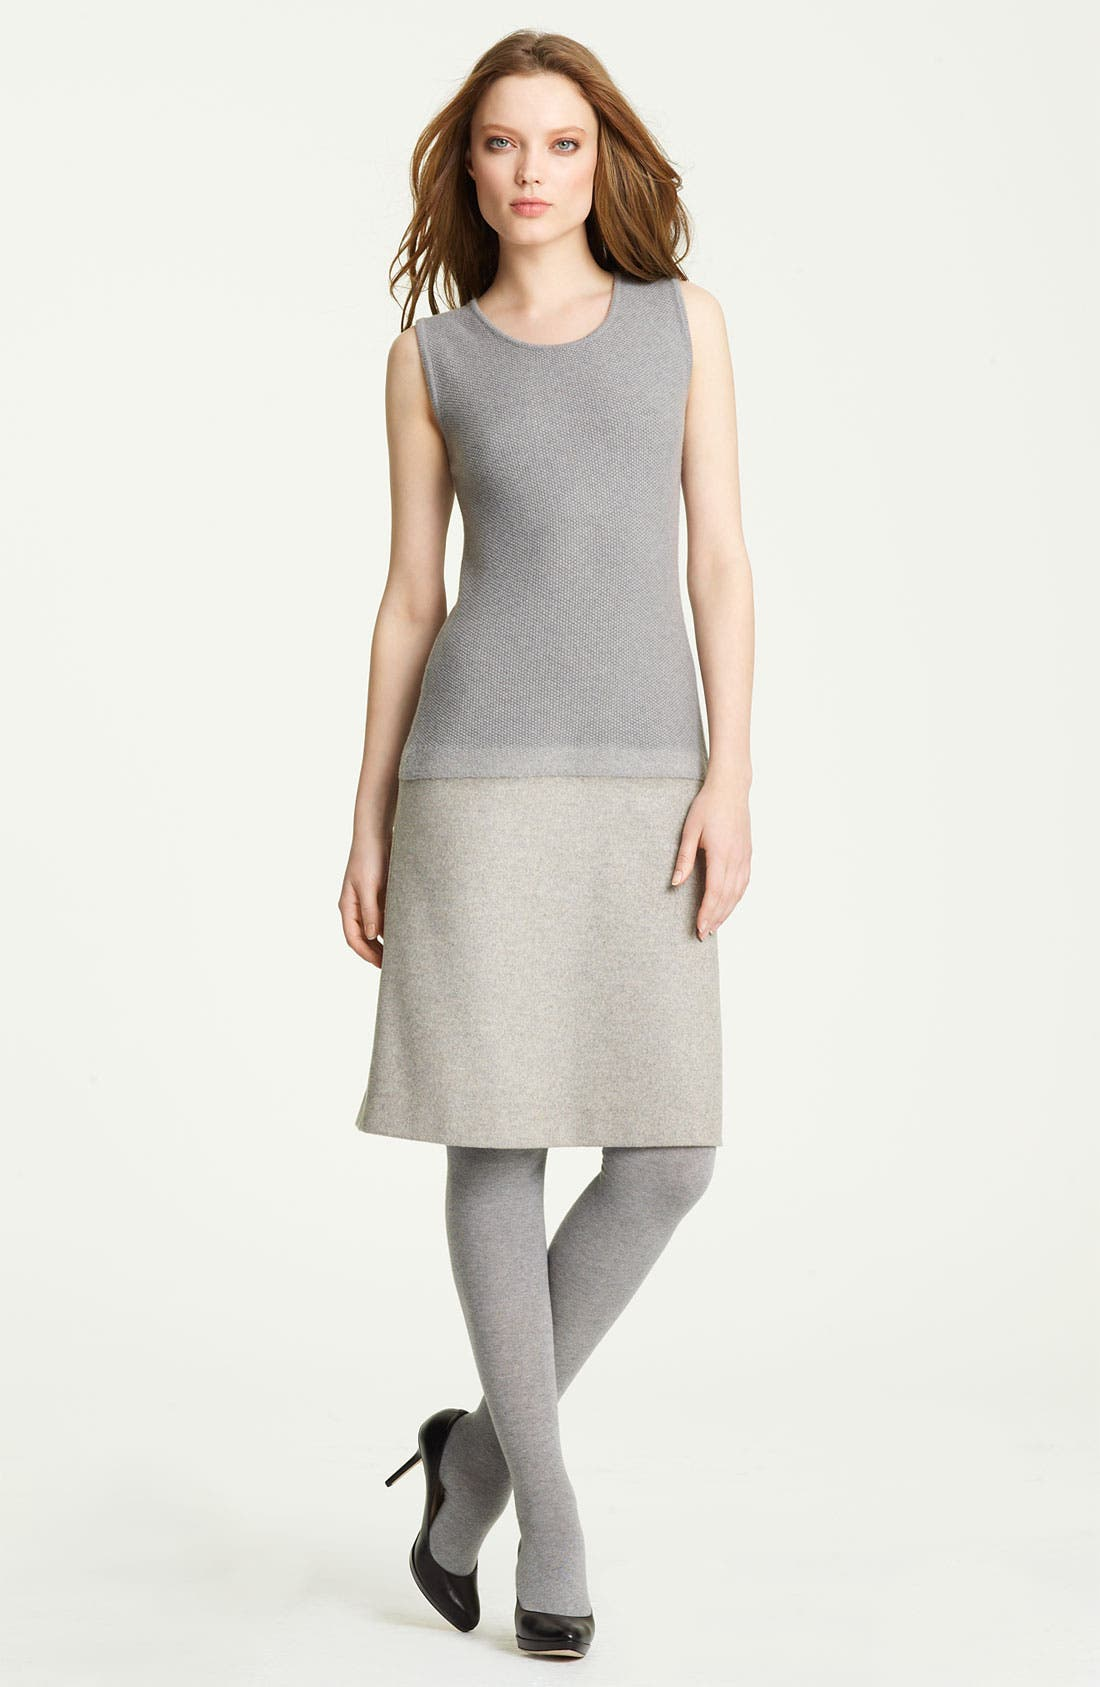 Main Image - Fabiana Filippi Knit & Felt Wool Blend Dress